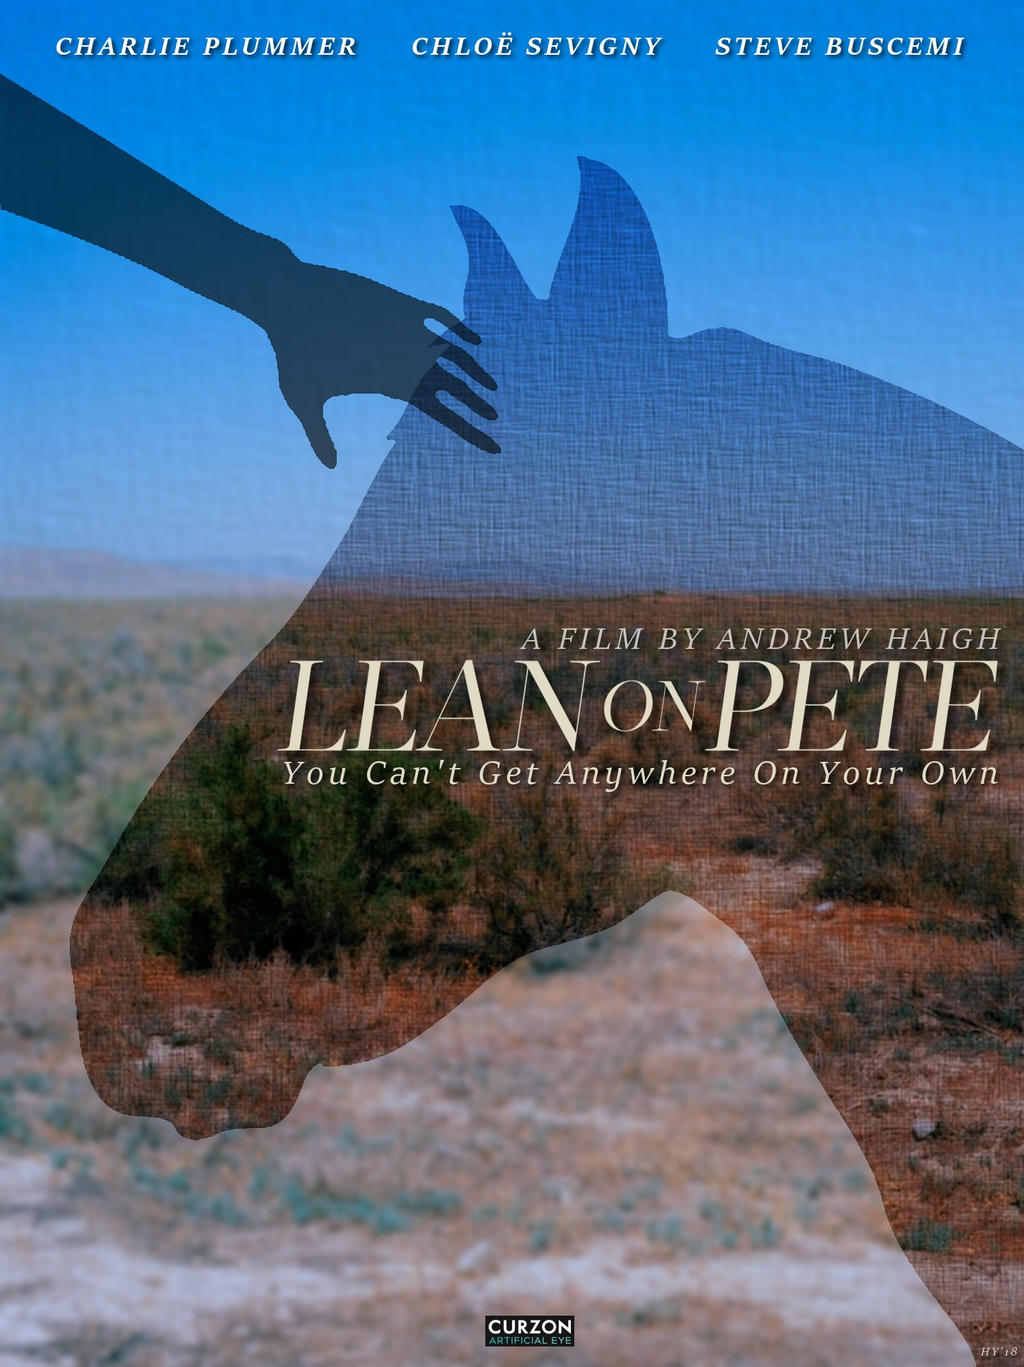 Lean On Pete (movie poster)